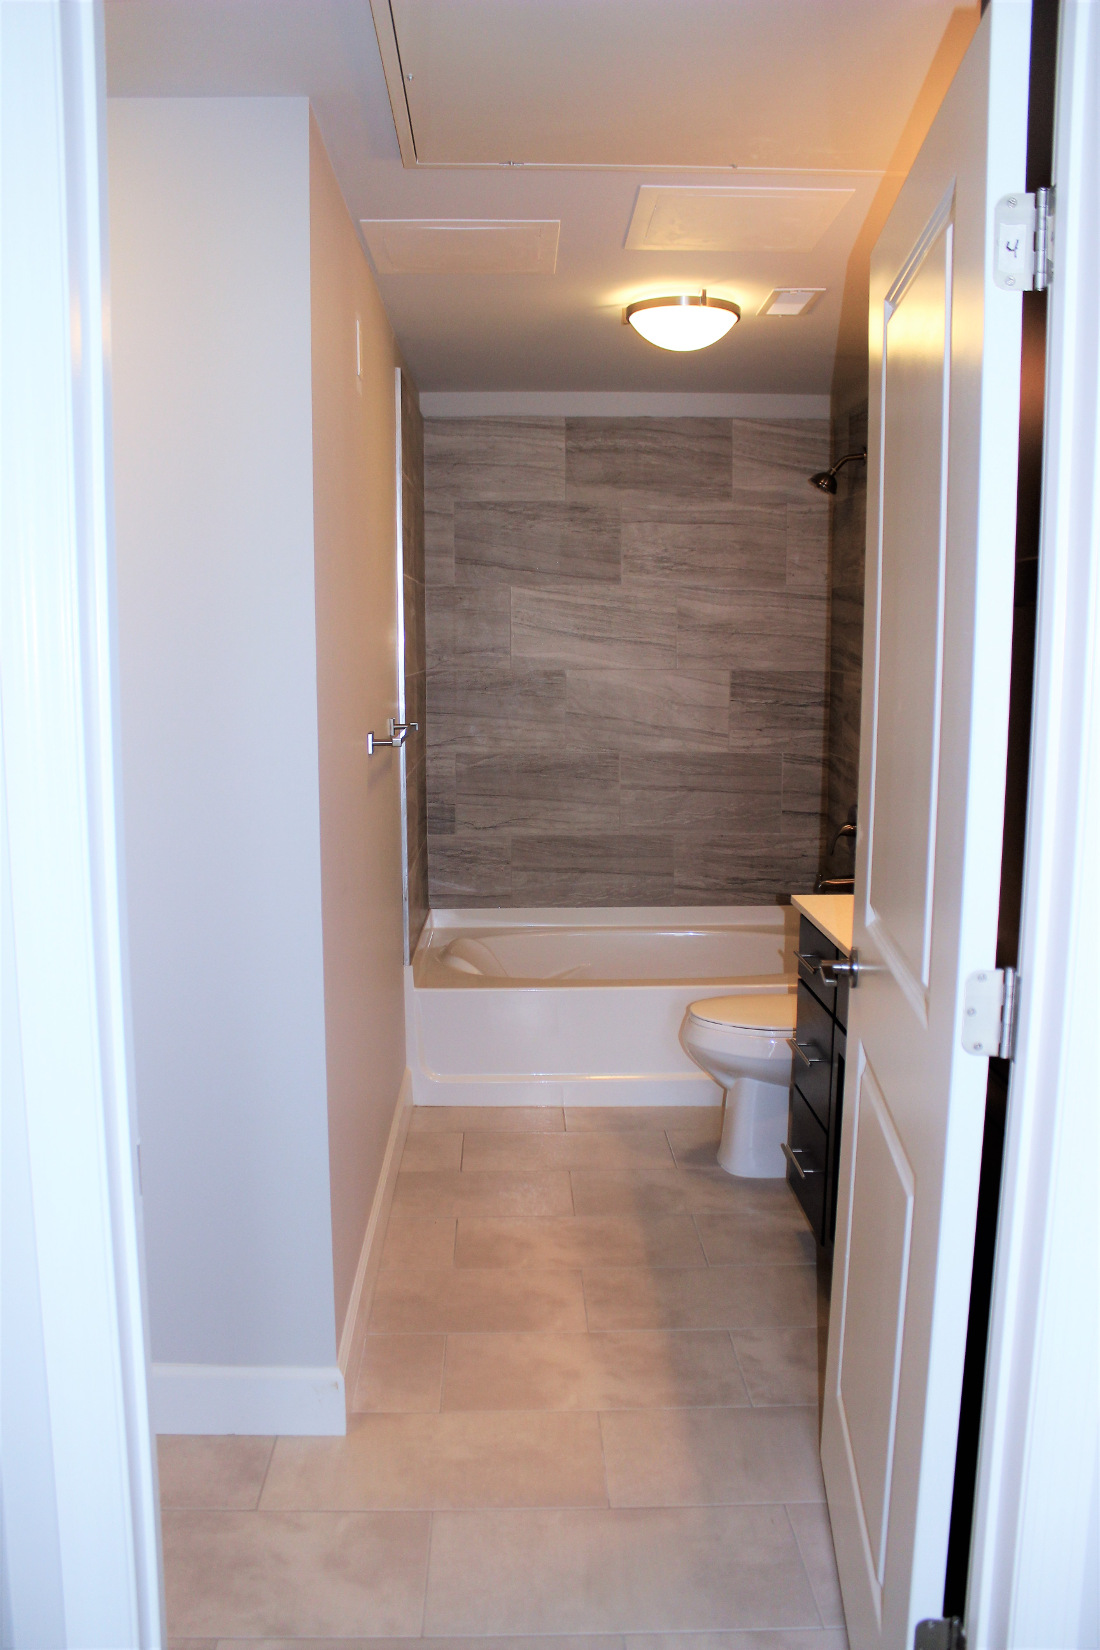 A2 Bathroom at the Vue at Creve Coeur Apartments in Creve Coeur, MO